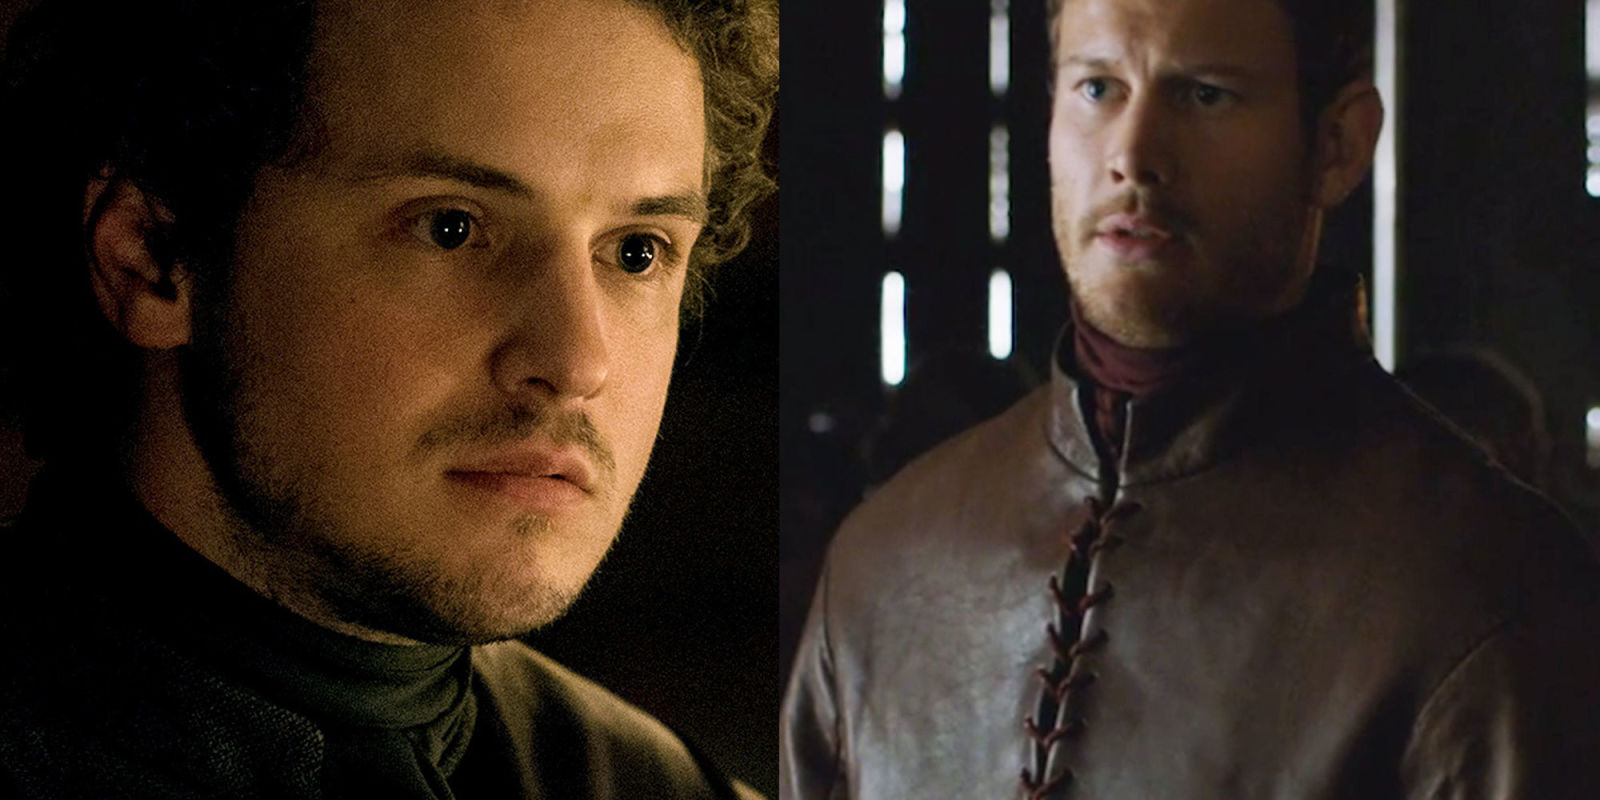 Hang on, who is Game of Thrones' Dickon Tarly from episode 4 'Spoils of War'?